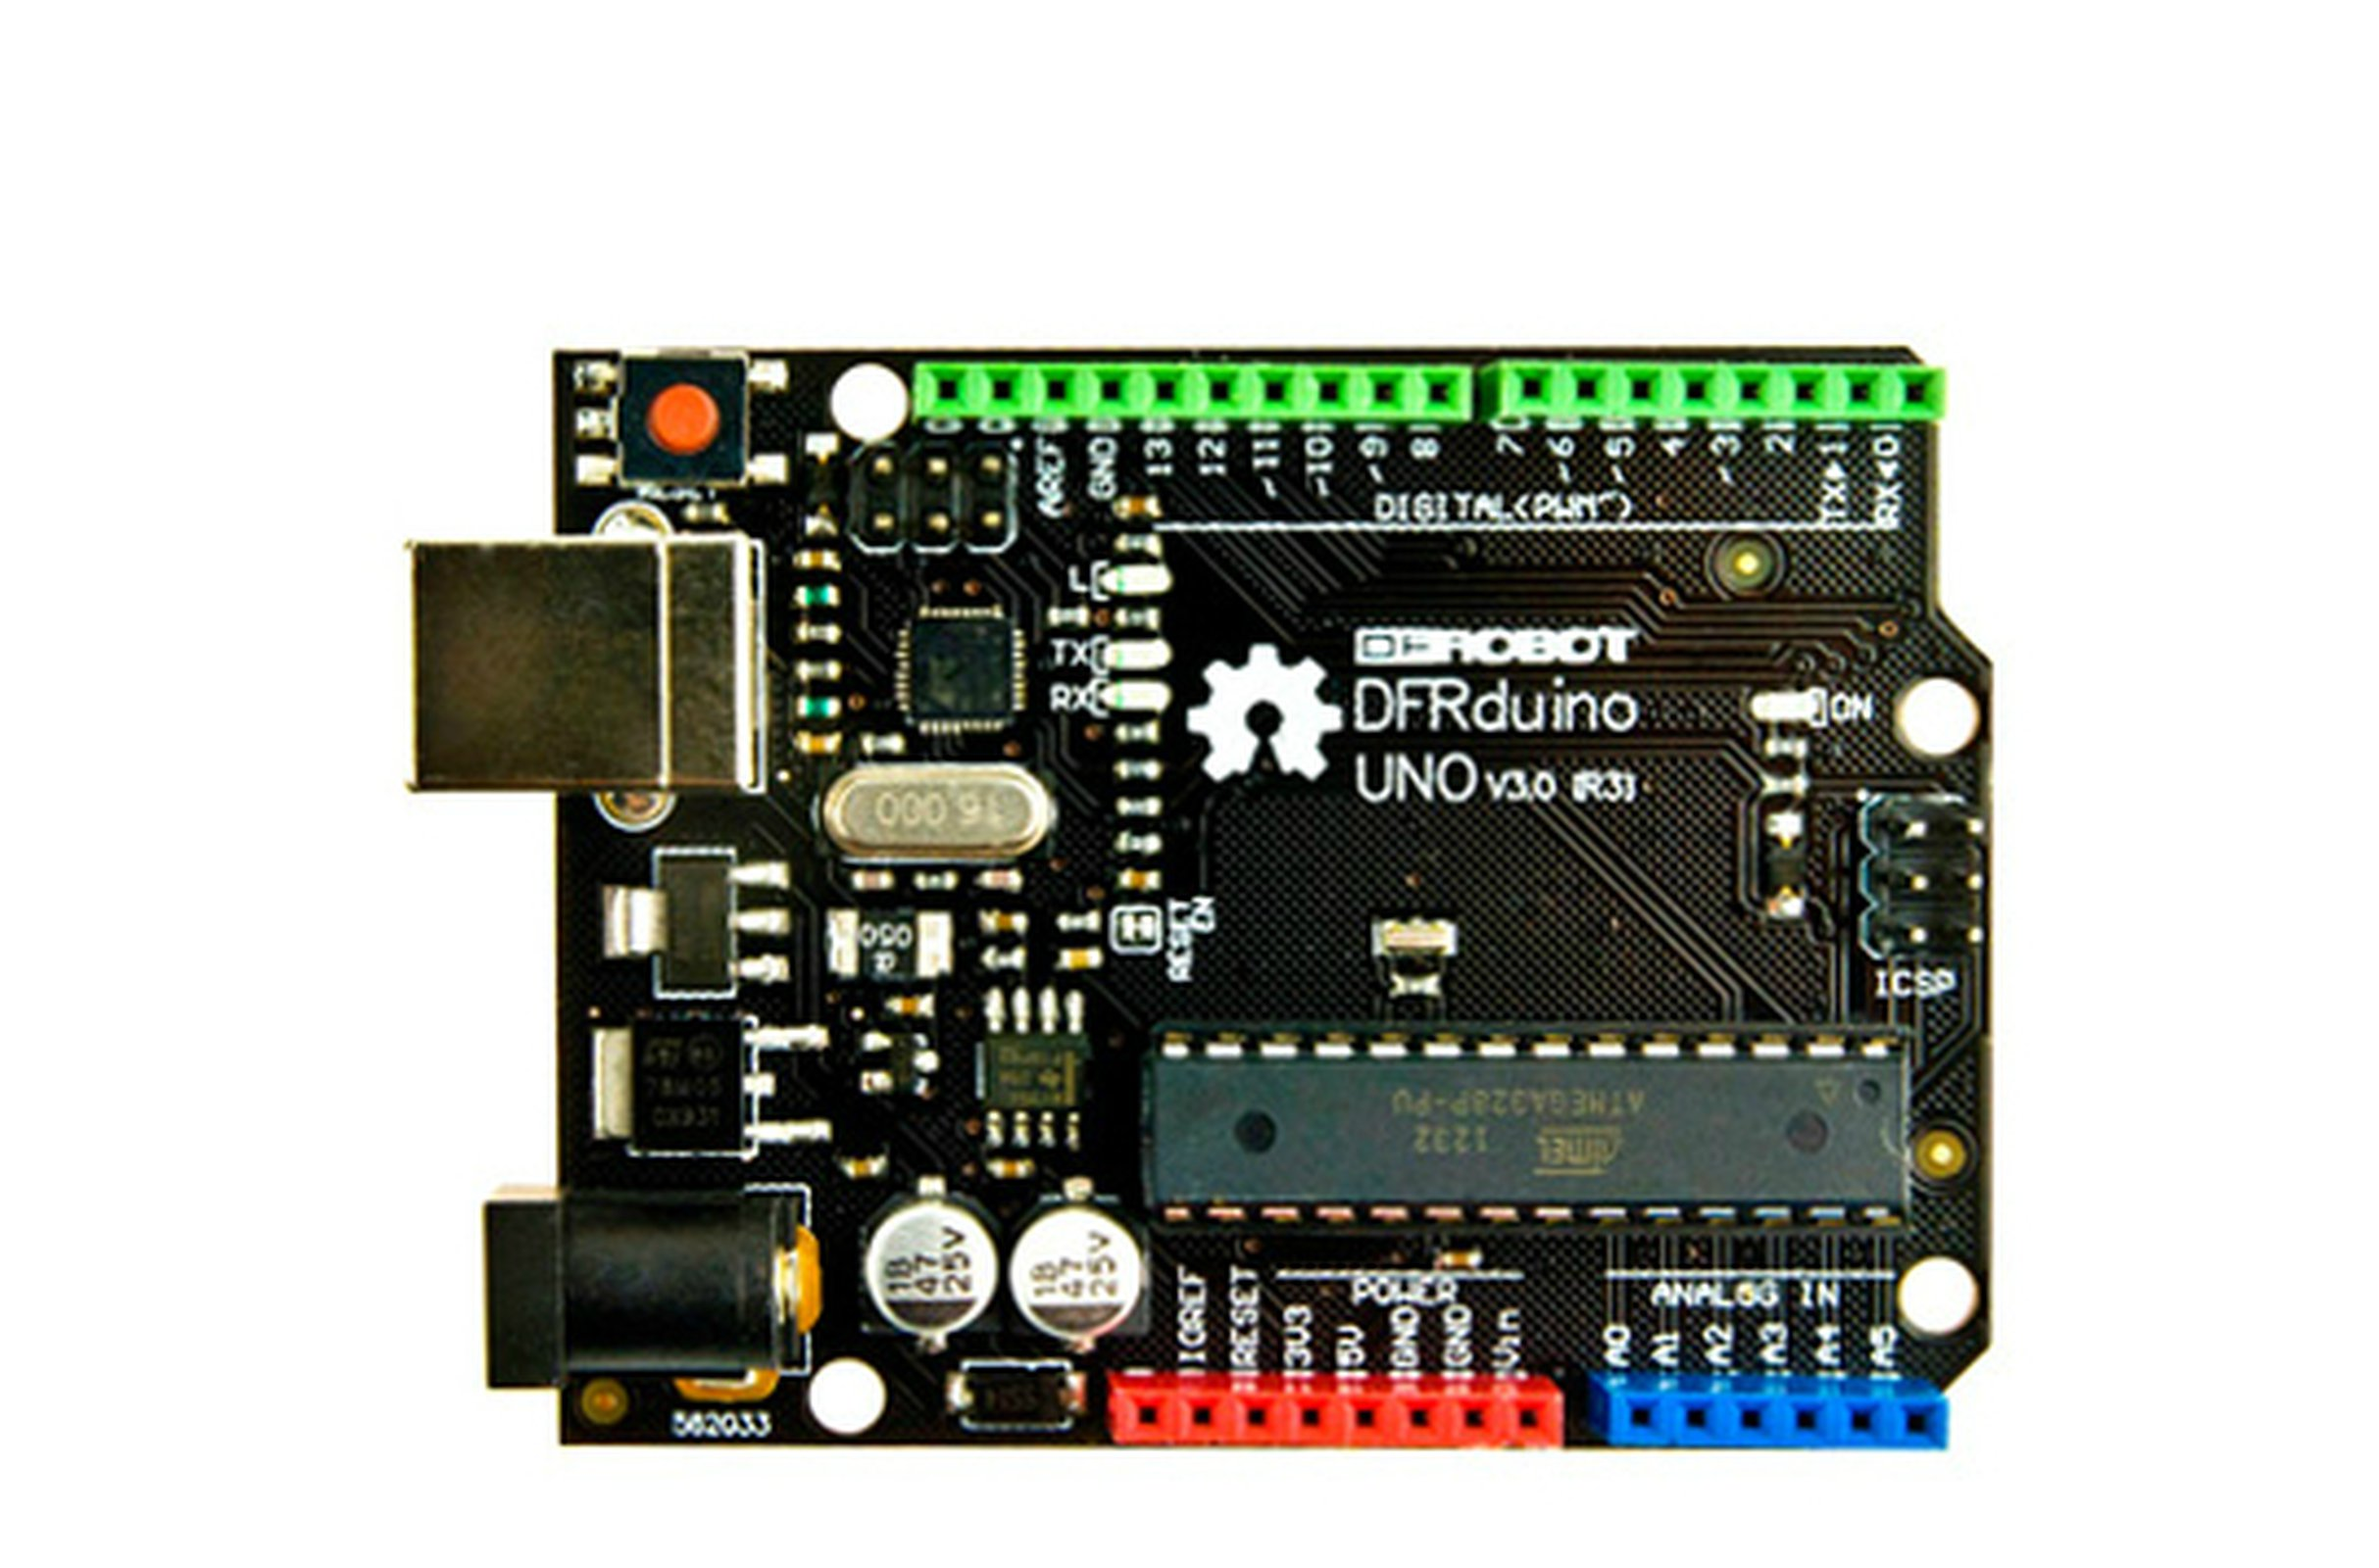 Dfrduino Uno R3 From Exlene On Tindie Arduino Atmega328p 16u2 Dip Usb Cable Programming 2